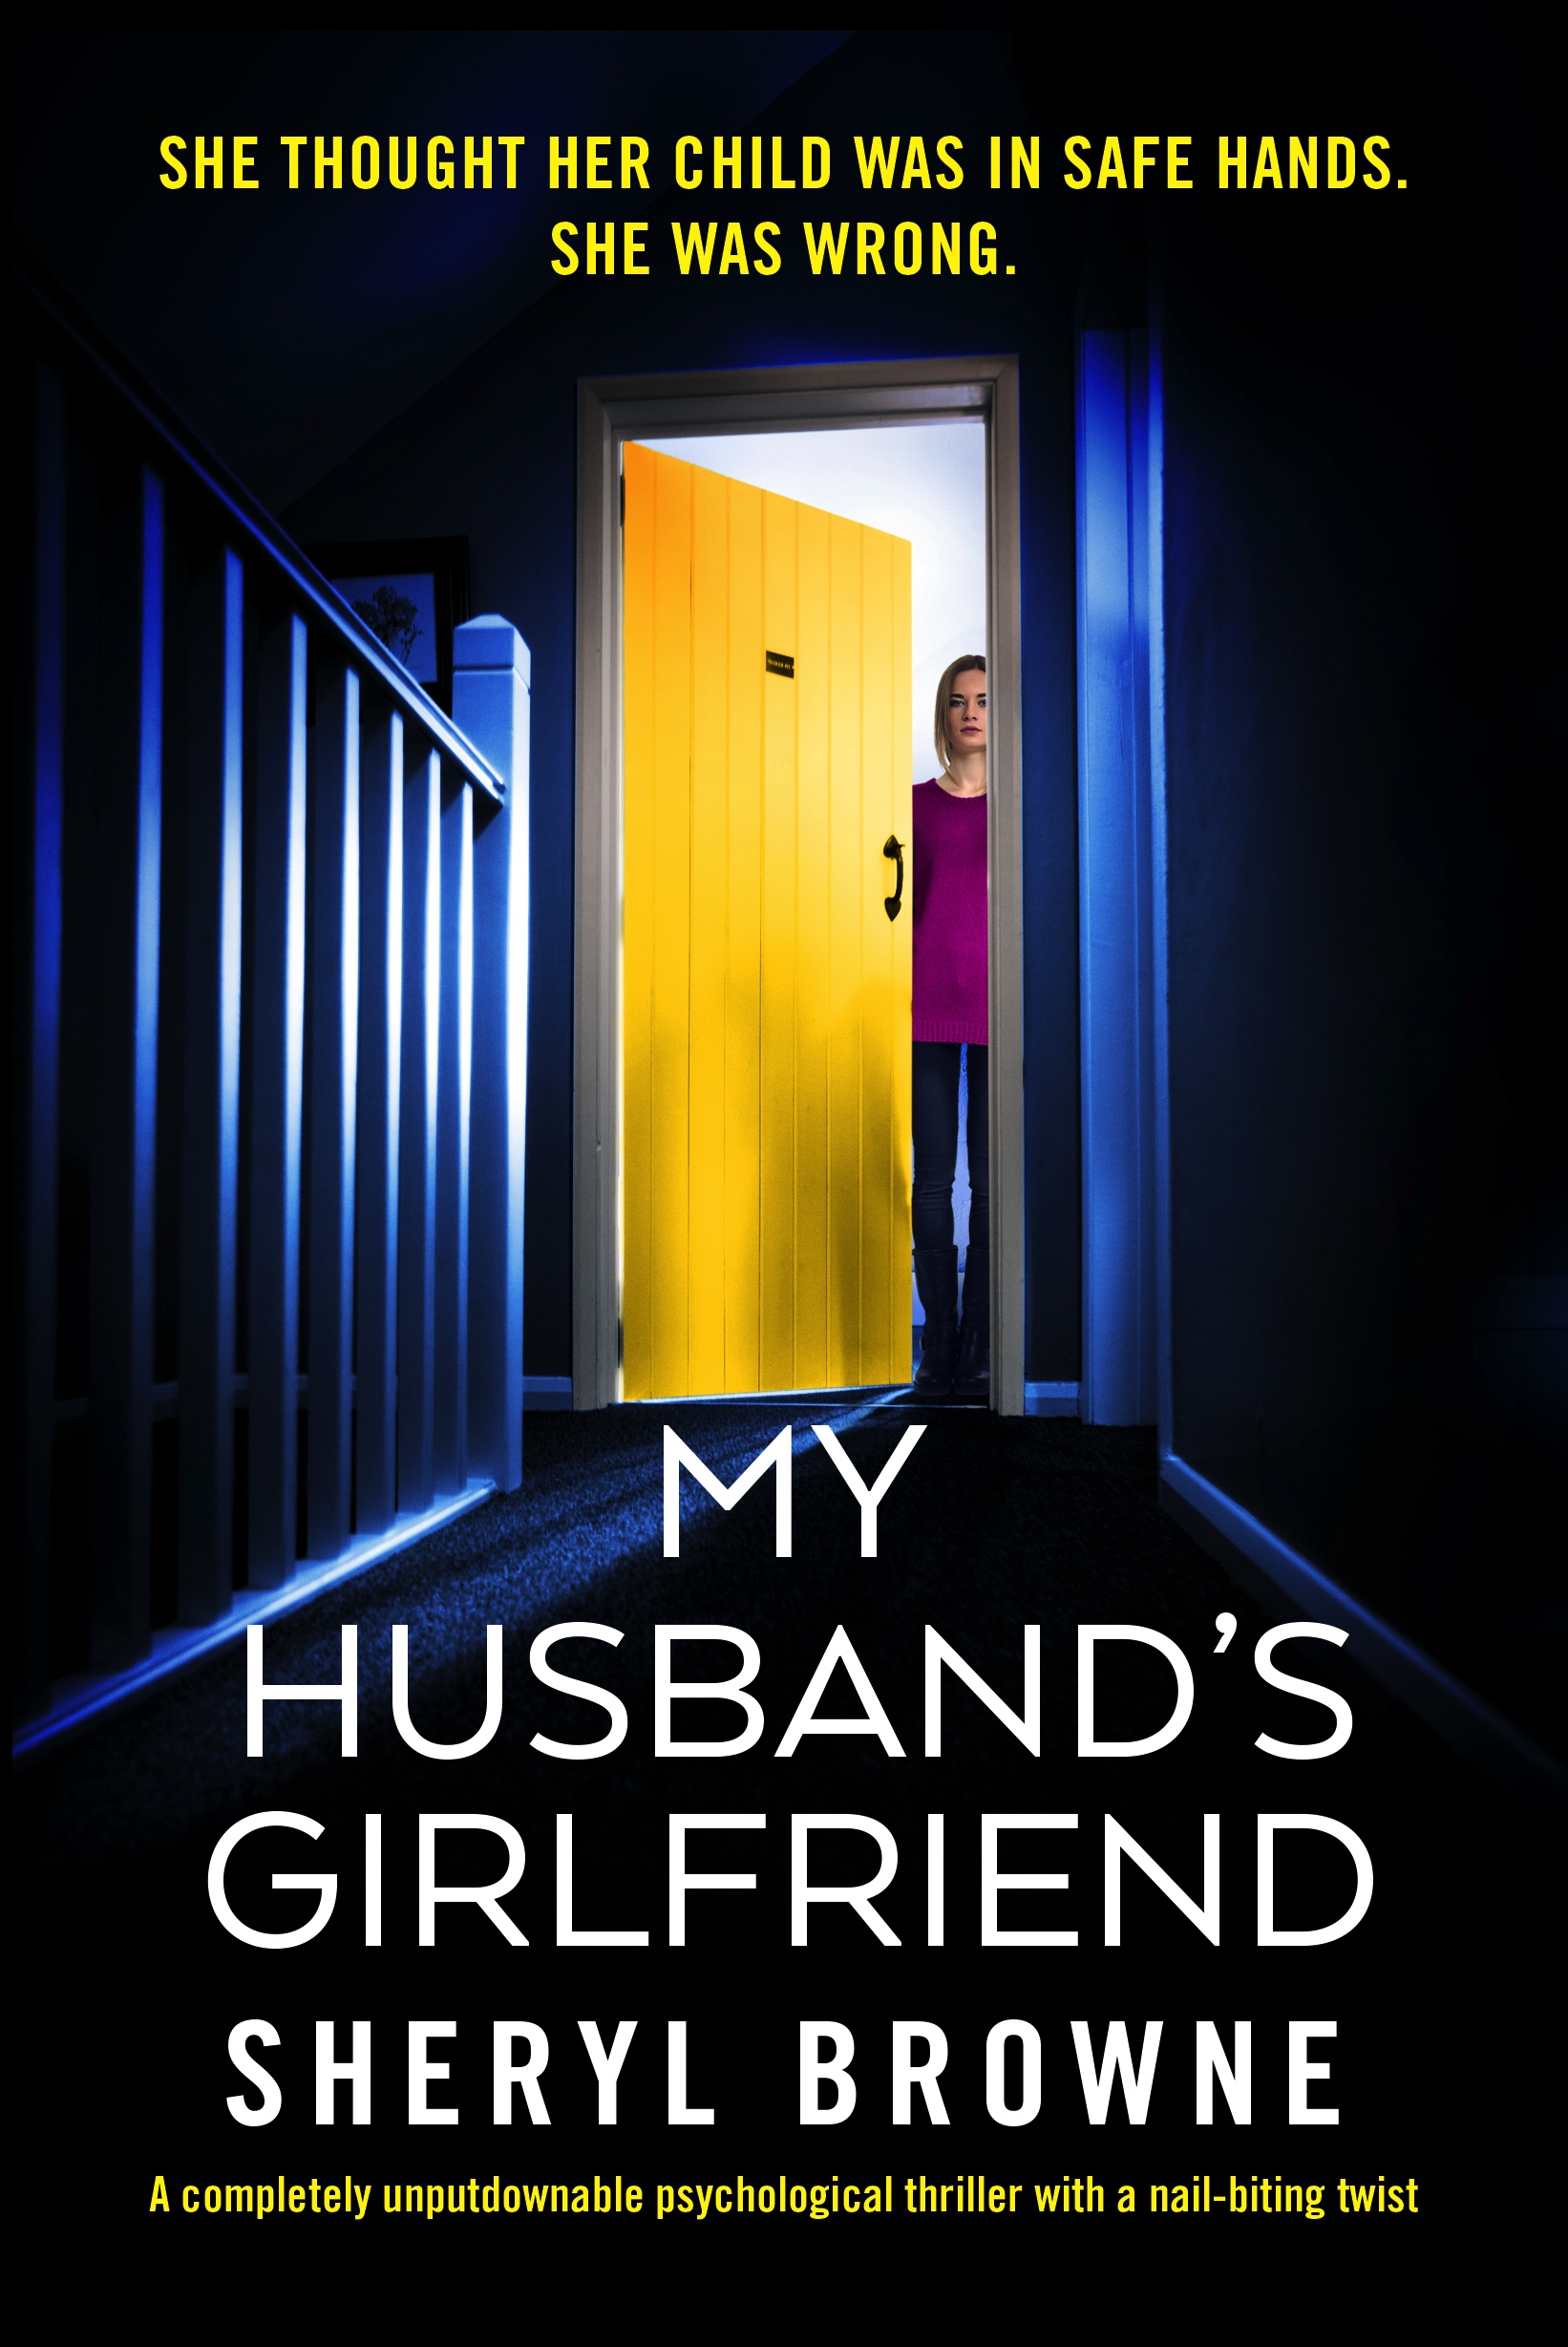 My Husband's Girlfriend book cover